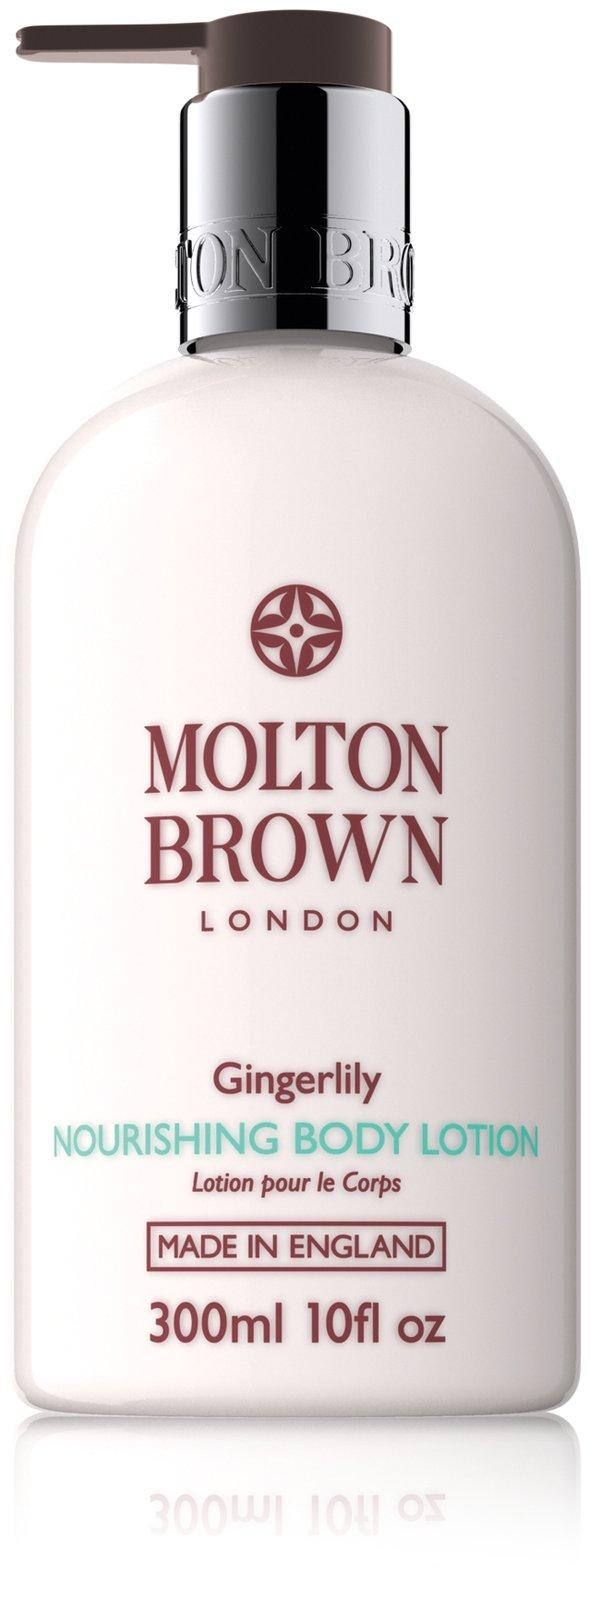 Molton Brown Gingerlily Body Lotion